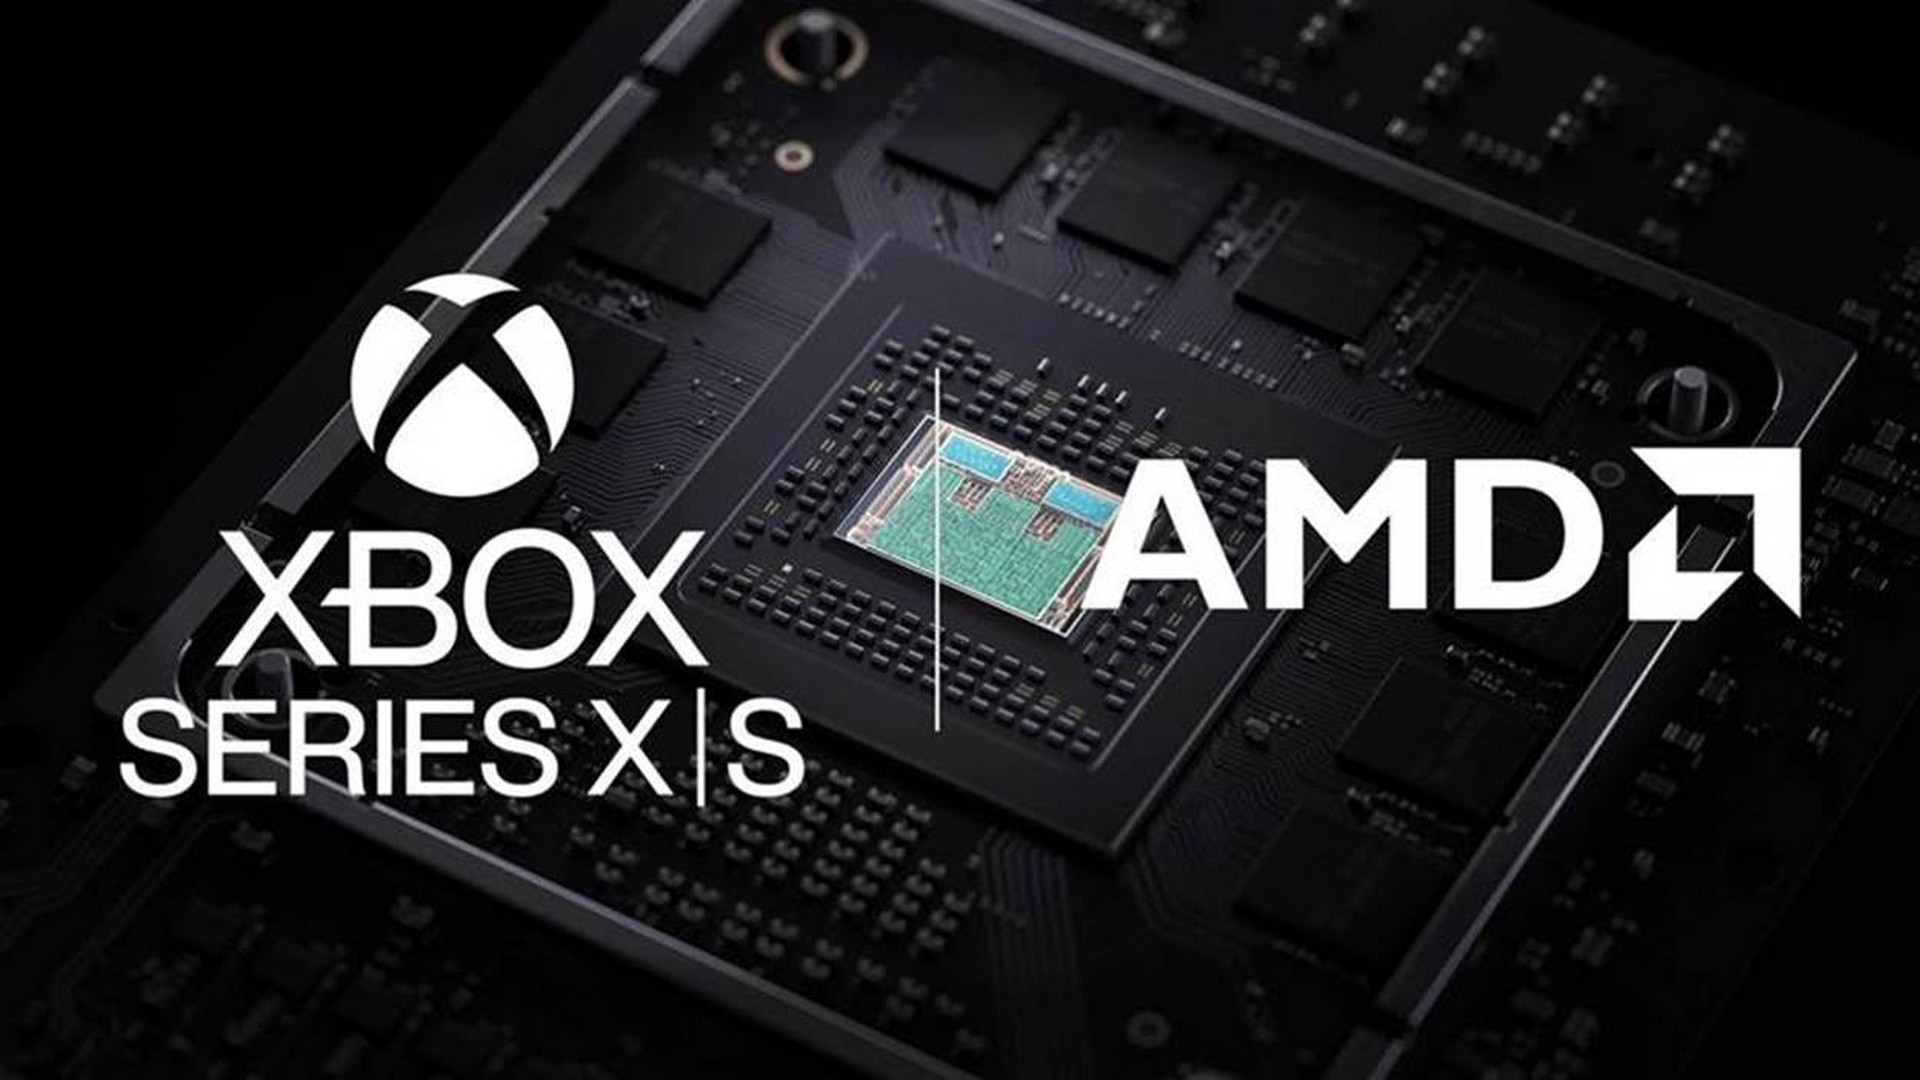 A Closer Look at How Xbox Series X|S Integrate AMD's Full RDNA 2 Architecture